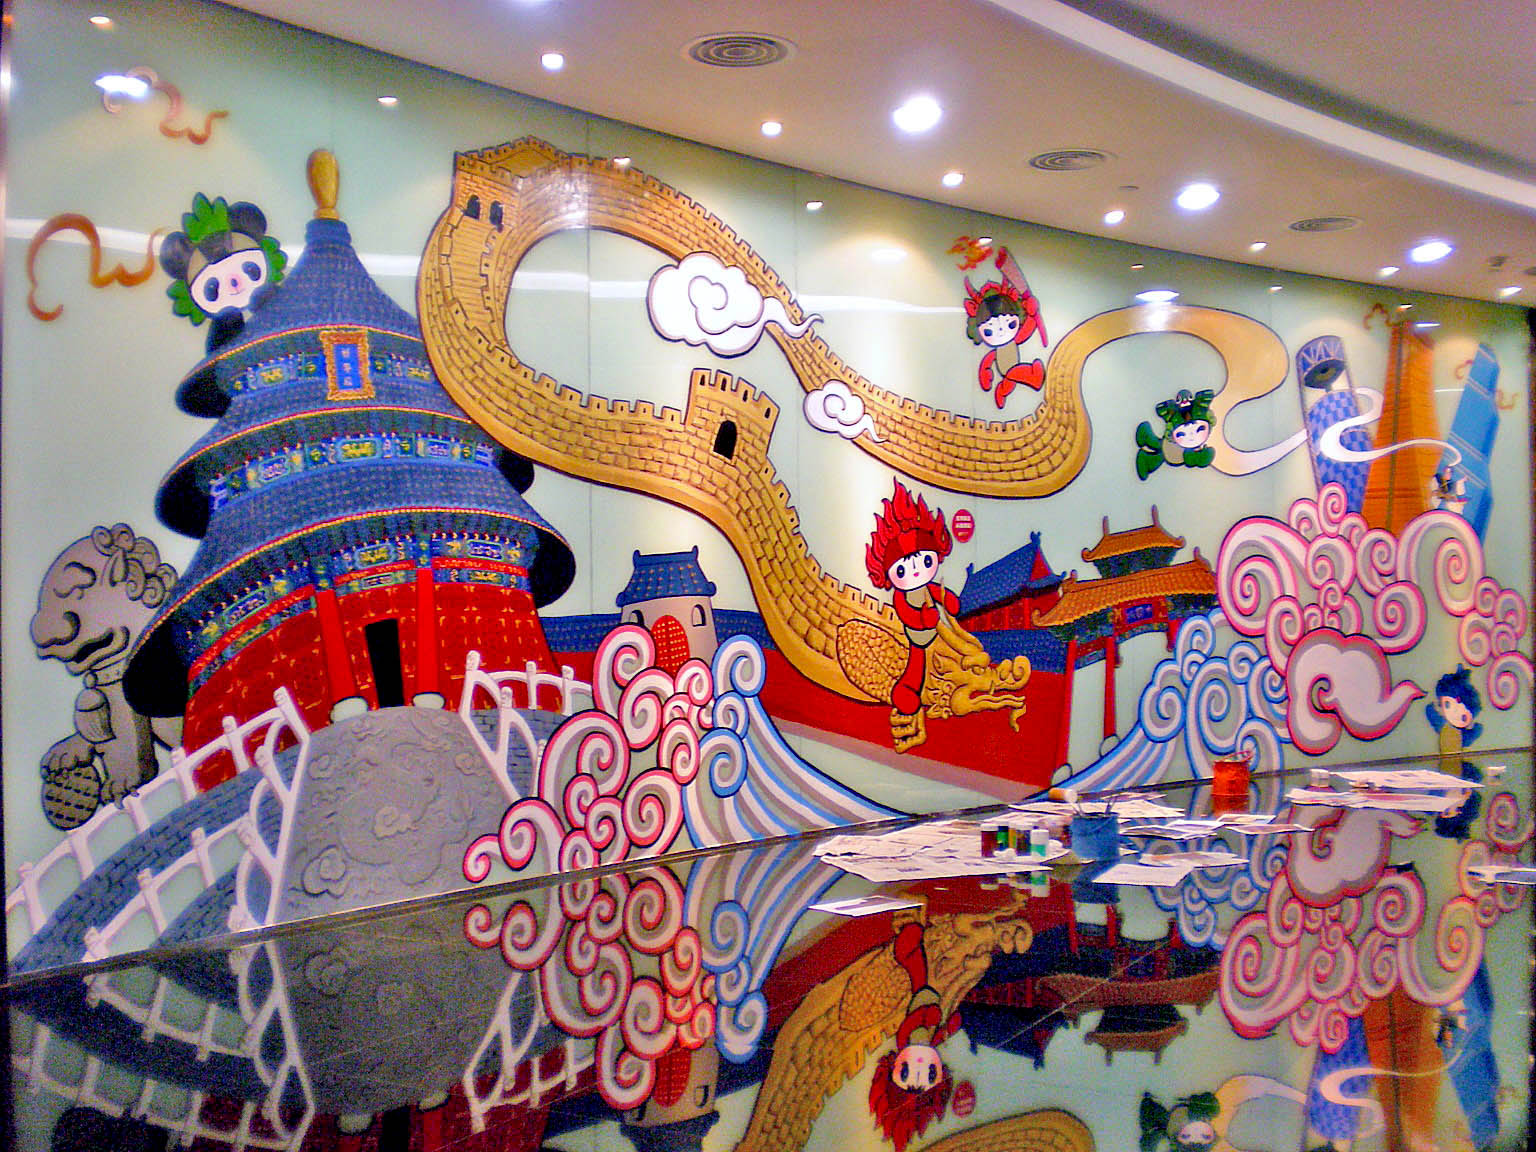 Chenlin Cai´s mural for the Korean Cultural Center in Beijing for the 2008 Beijing Olympics.